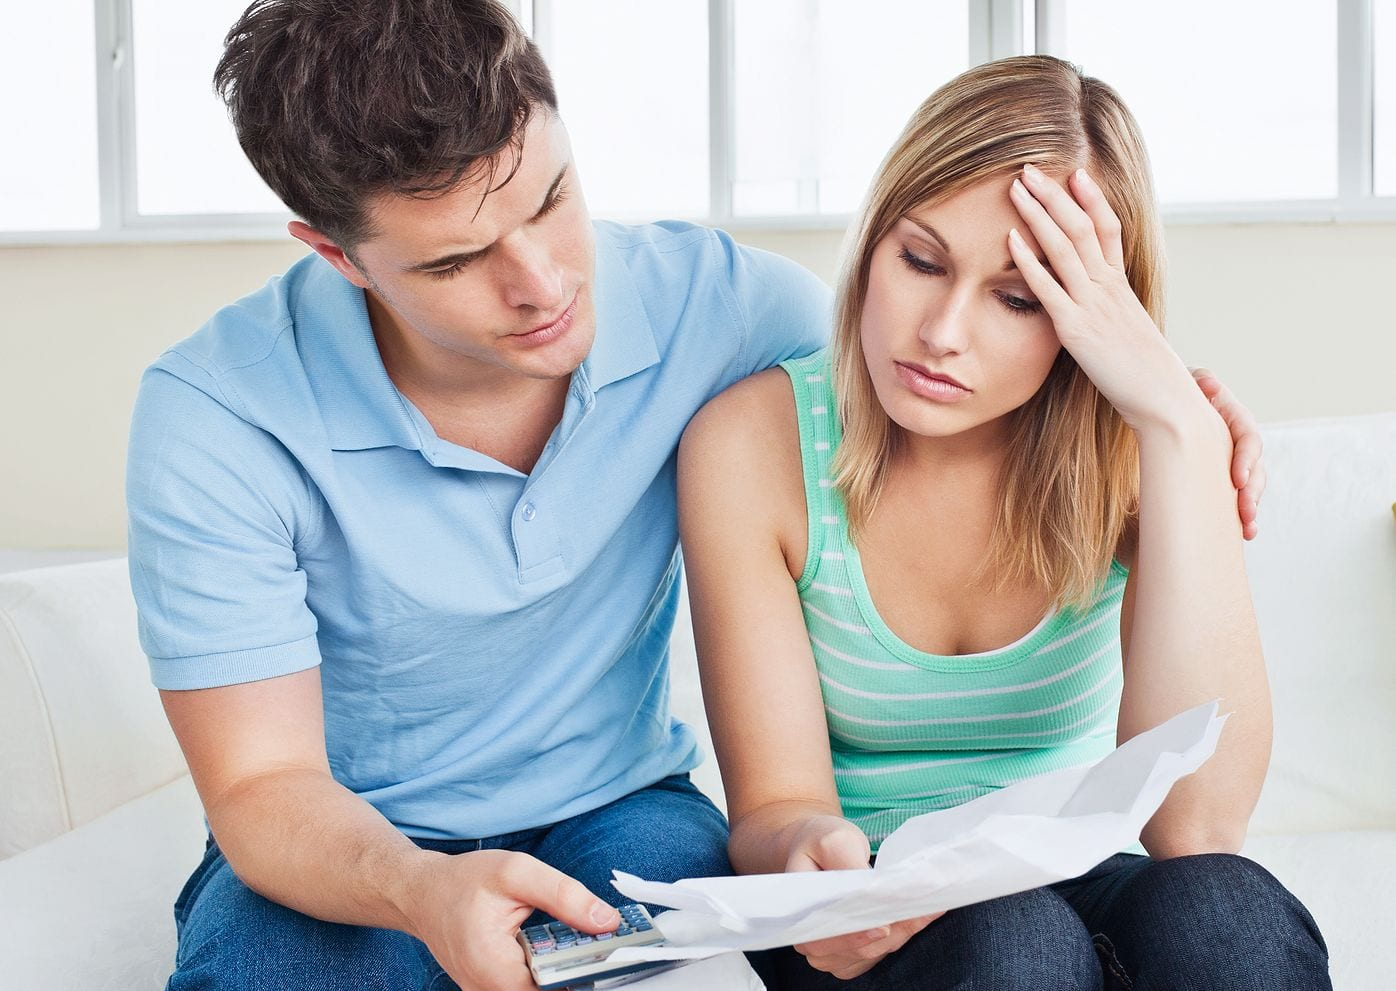 How To Qualify For Bad Credit Loans? We'll Help To Determine